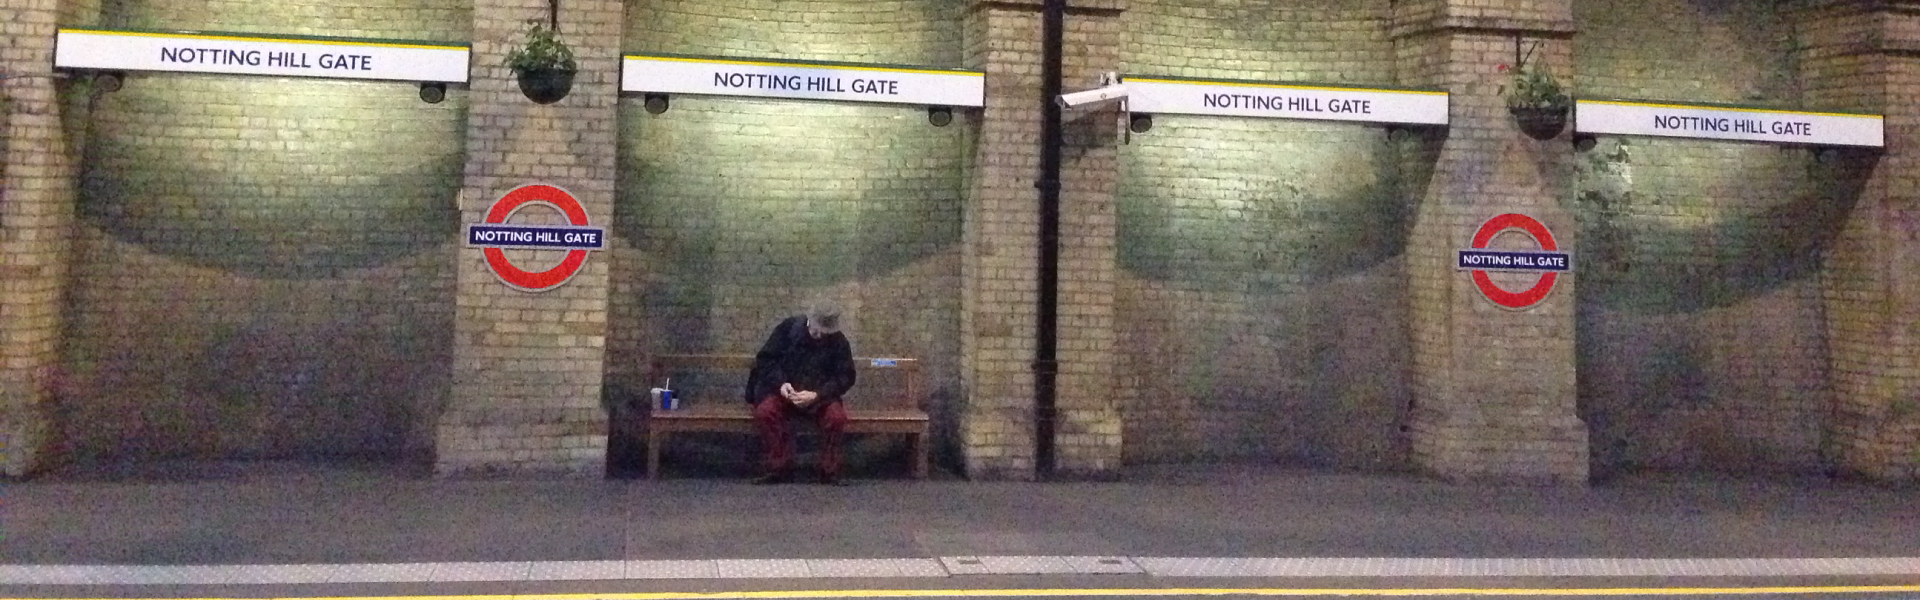 nottinghillstation